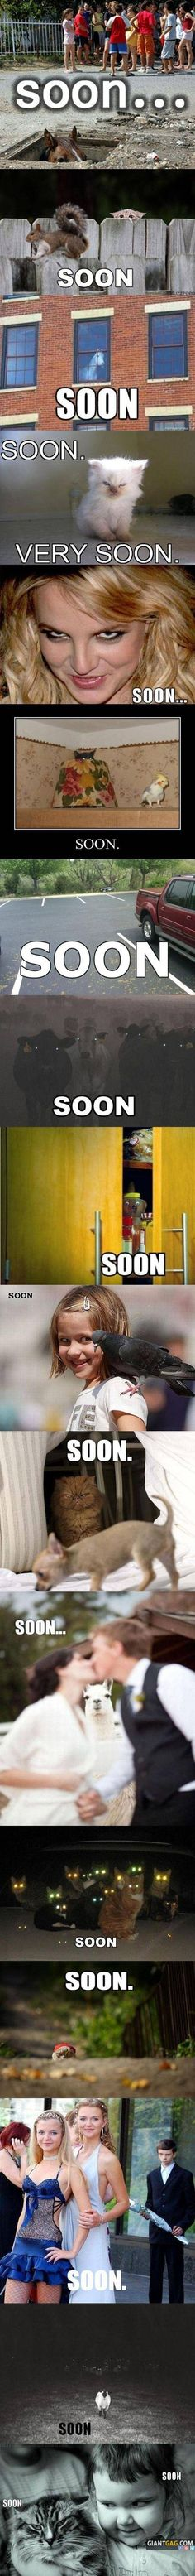 Soon (Compilation) - #funny #humor #animals